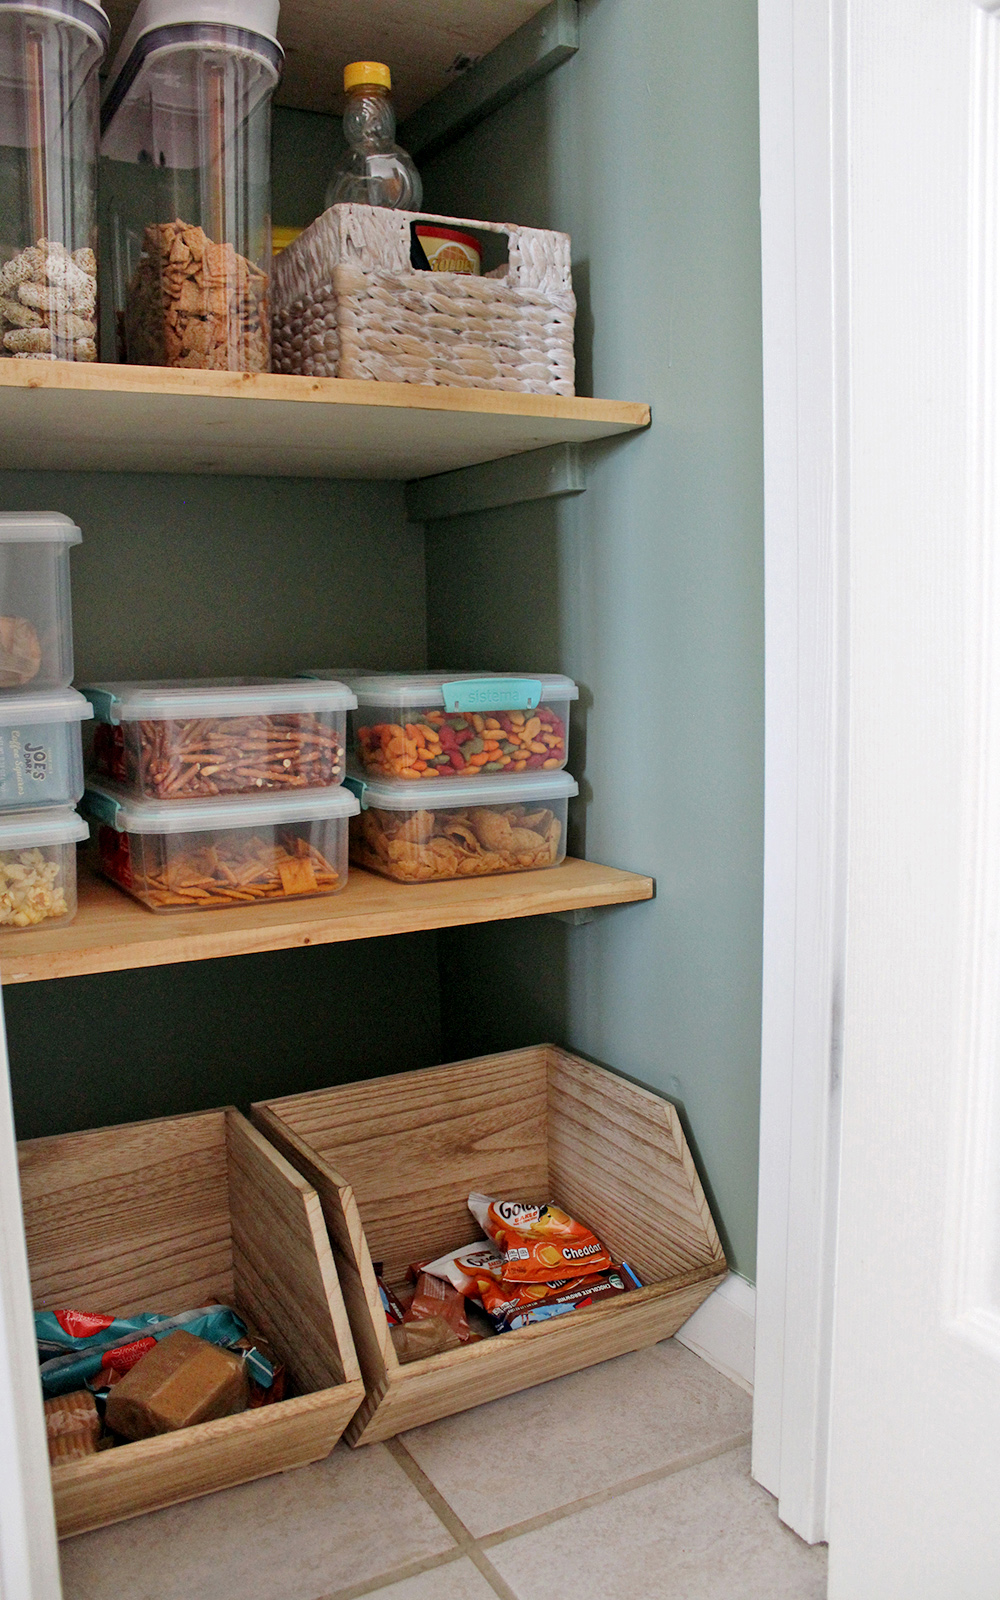 6 Practical Tips for Storing More in a Kitchen Pantry